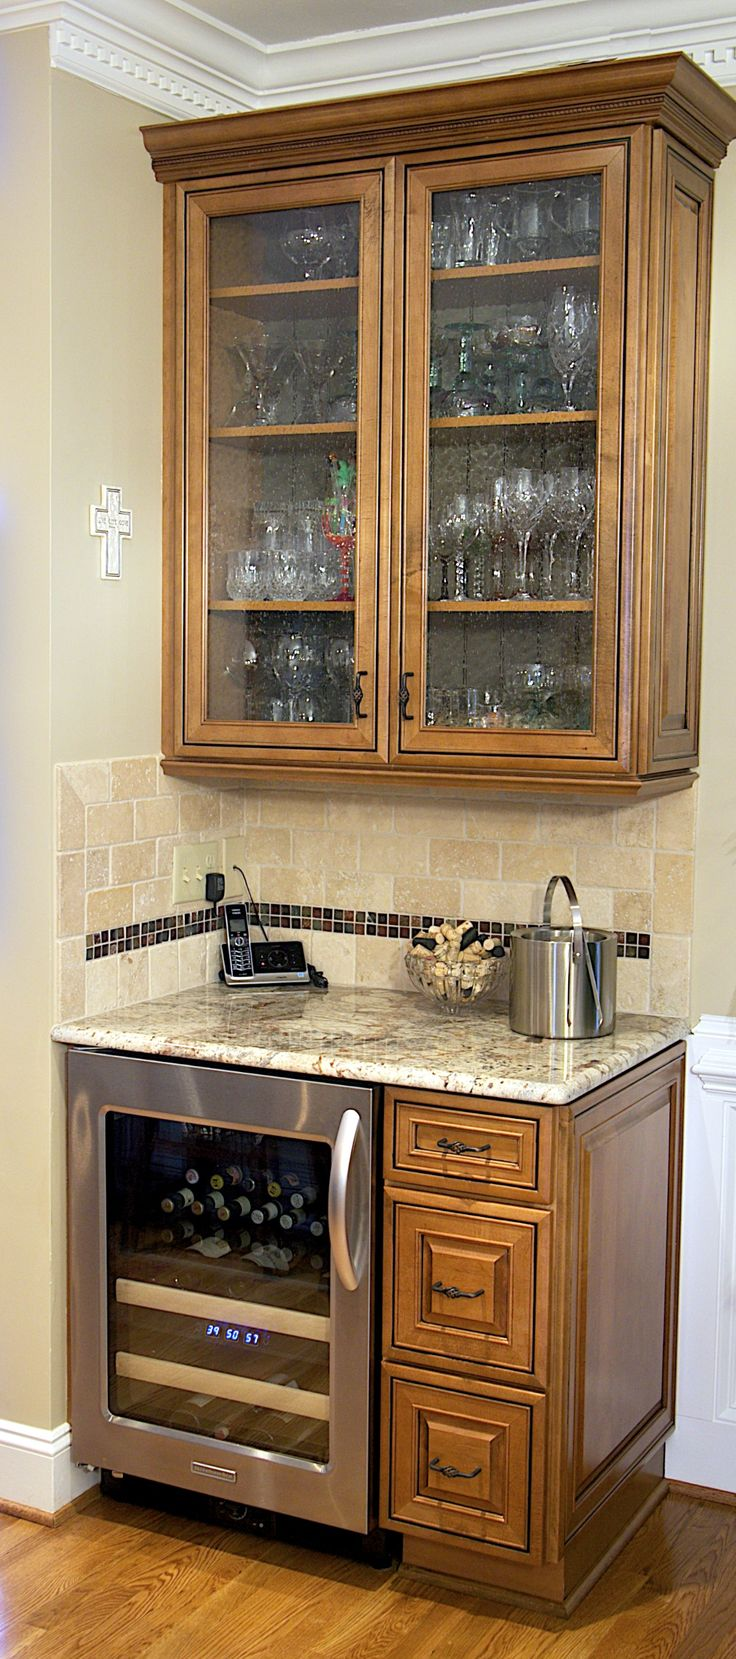 Best 25 Beverage center ideas on Pinterest  Built in bar Coffee bar built in and Beverage bars